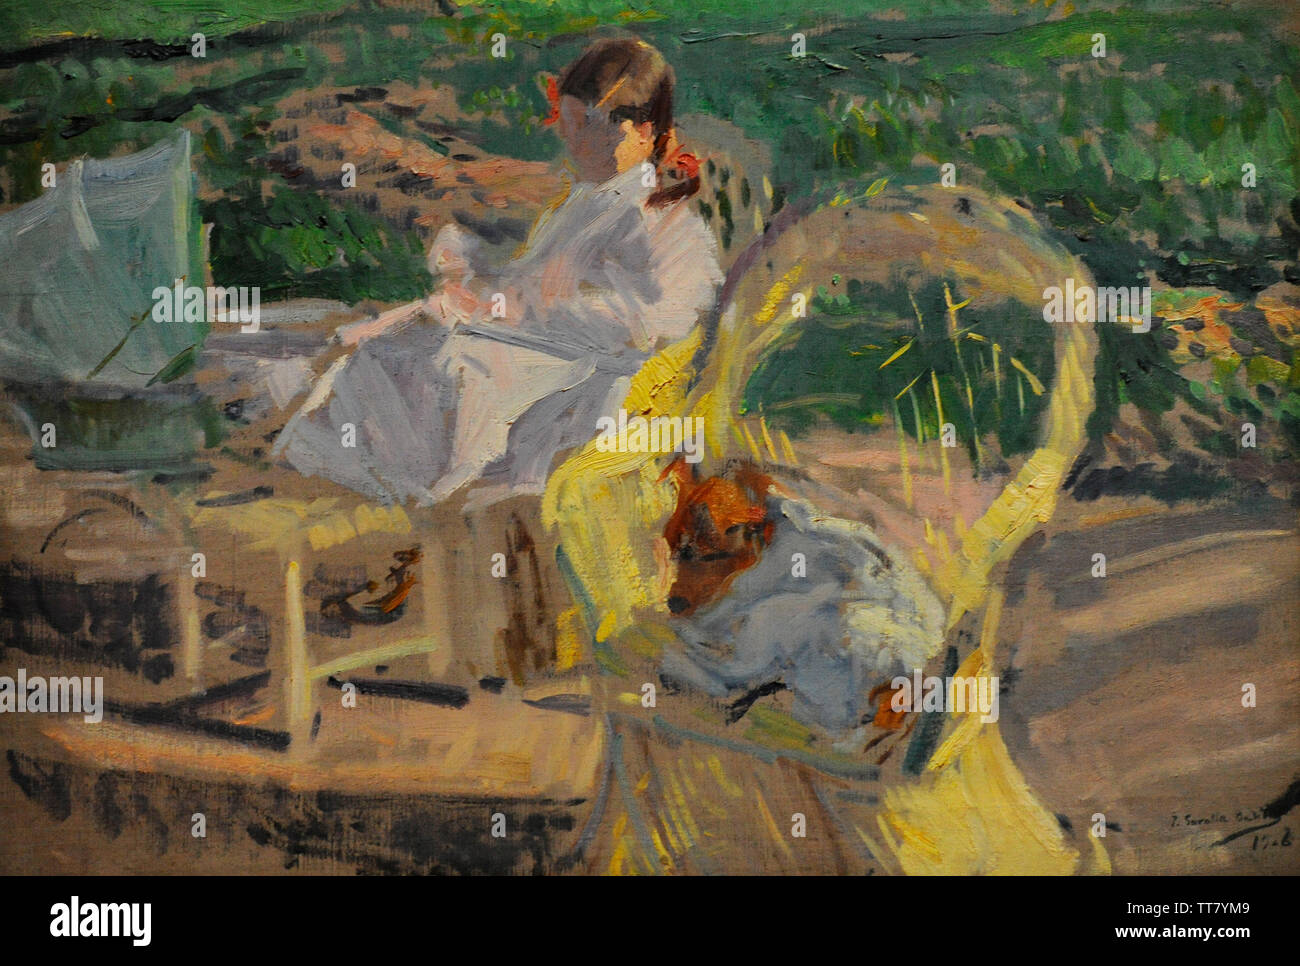 Joaquin Sorolla y Bastida (1863-1923). Spanish painter. In the garden of Miguel Angel Street, 1906. Painting possibly depicting Elena, little daughter of Sorolla, in the garden of the house that the Sorolla family rented on Miguel Angel Street. Sorolla Museum. Madrid. Spain. - Stock Image